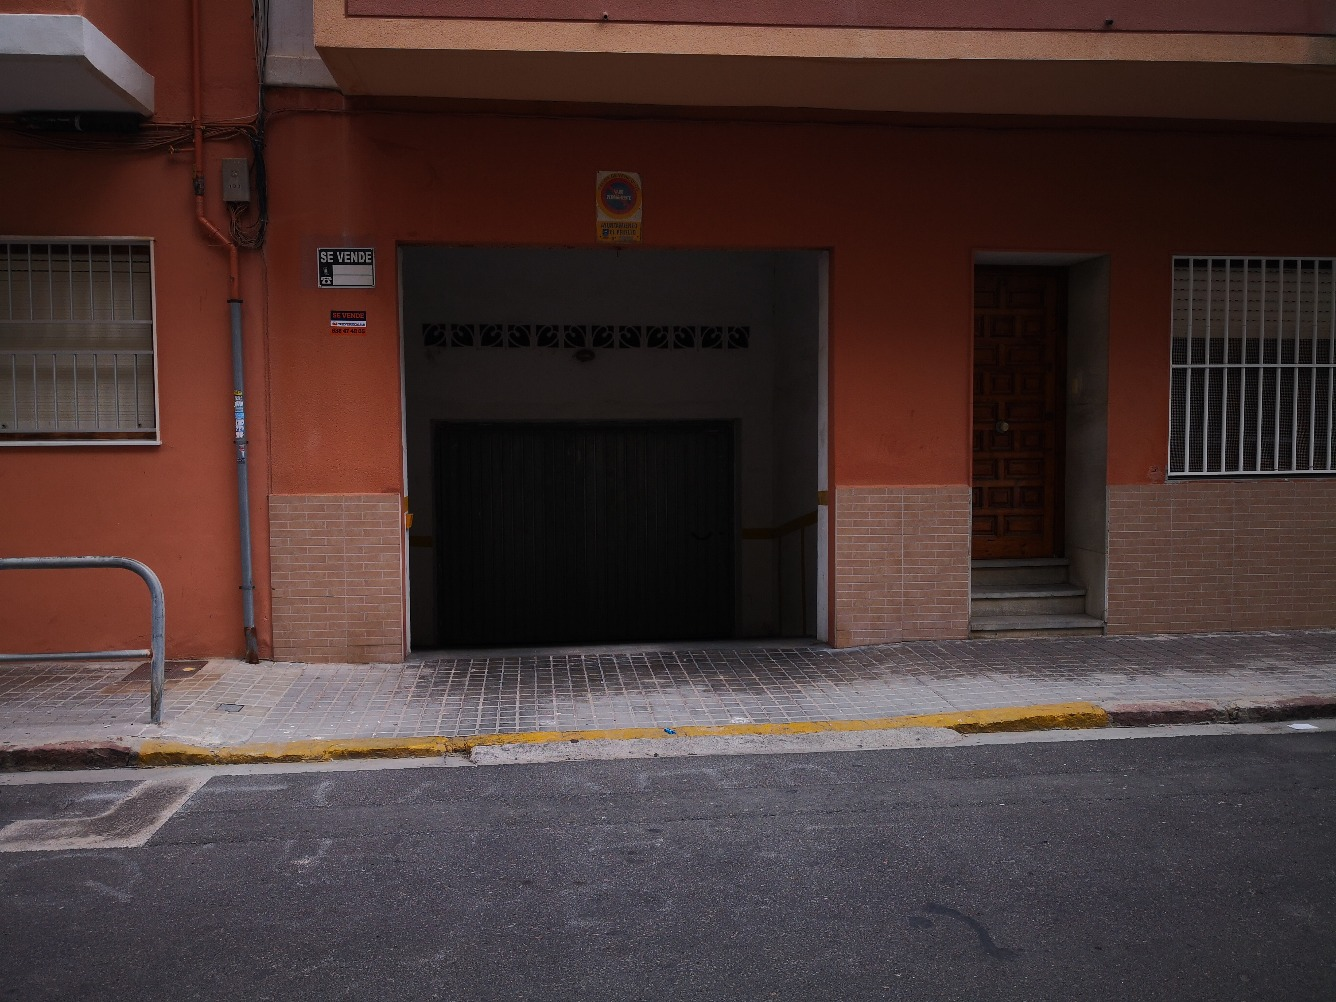 Parking voiture  Sueca - Sueca ciudad